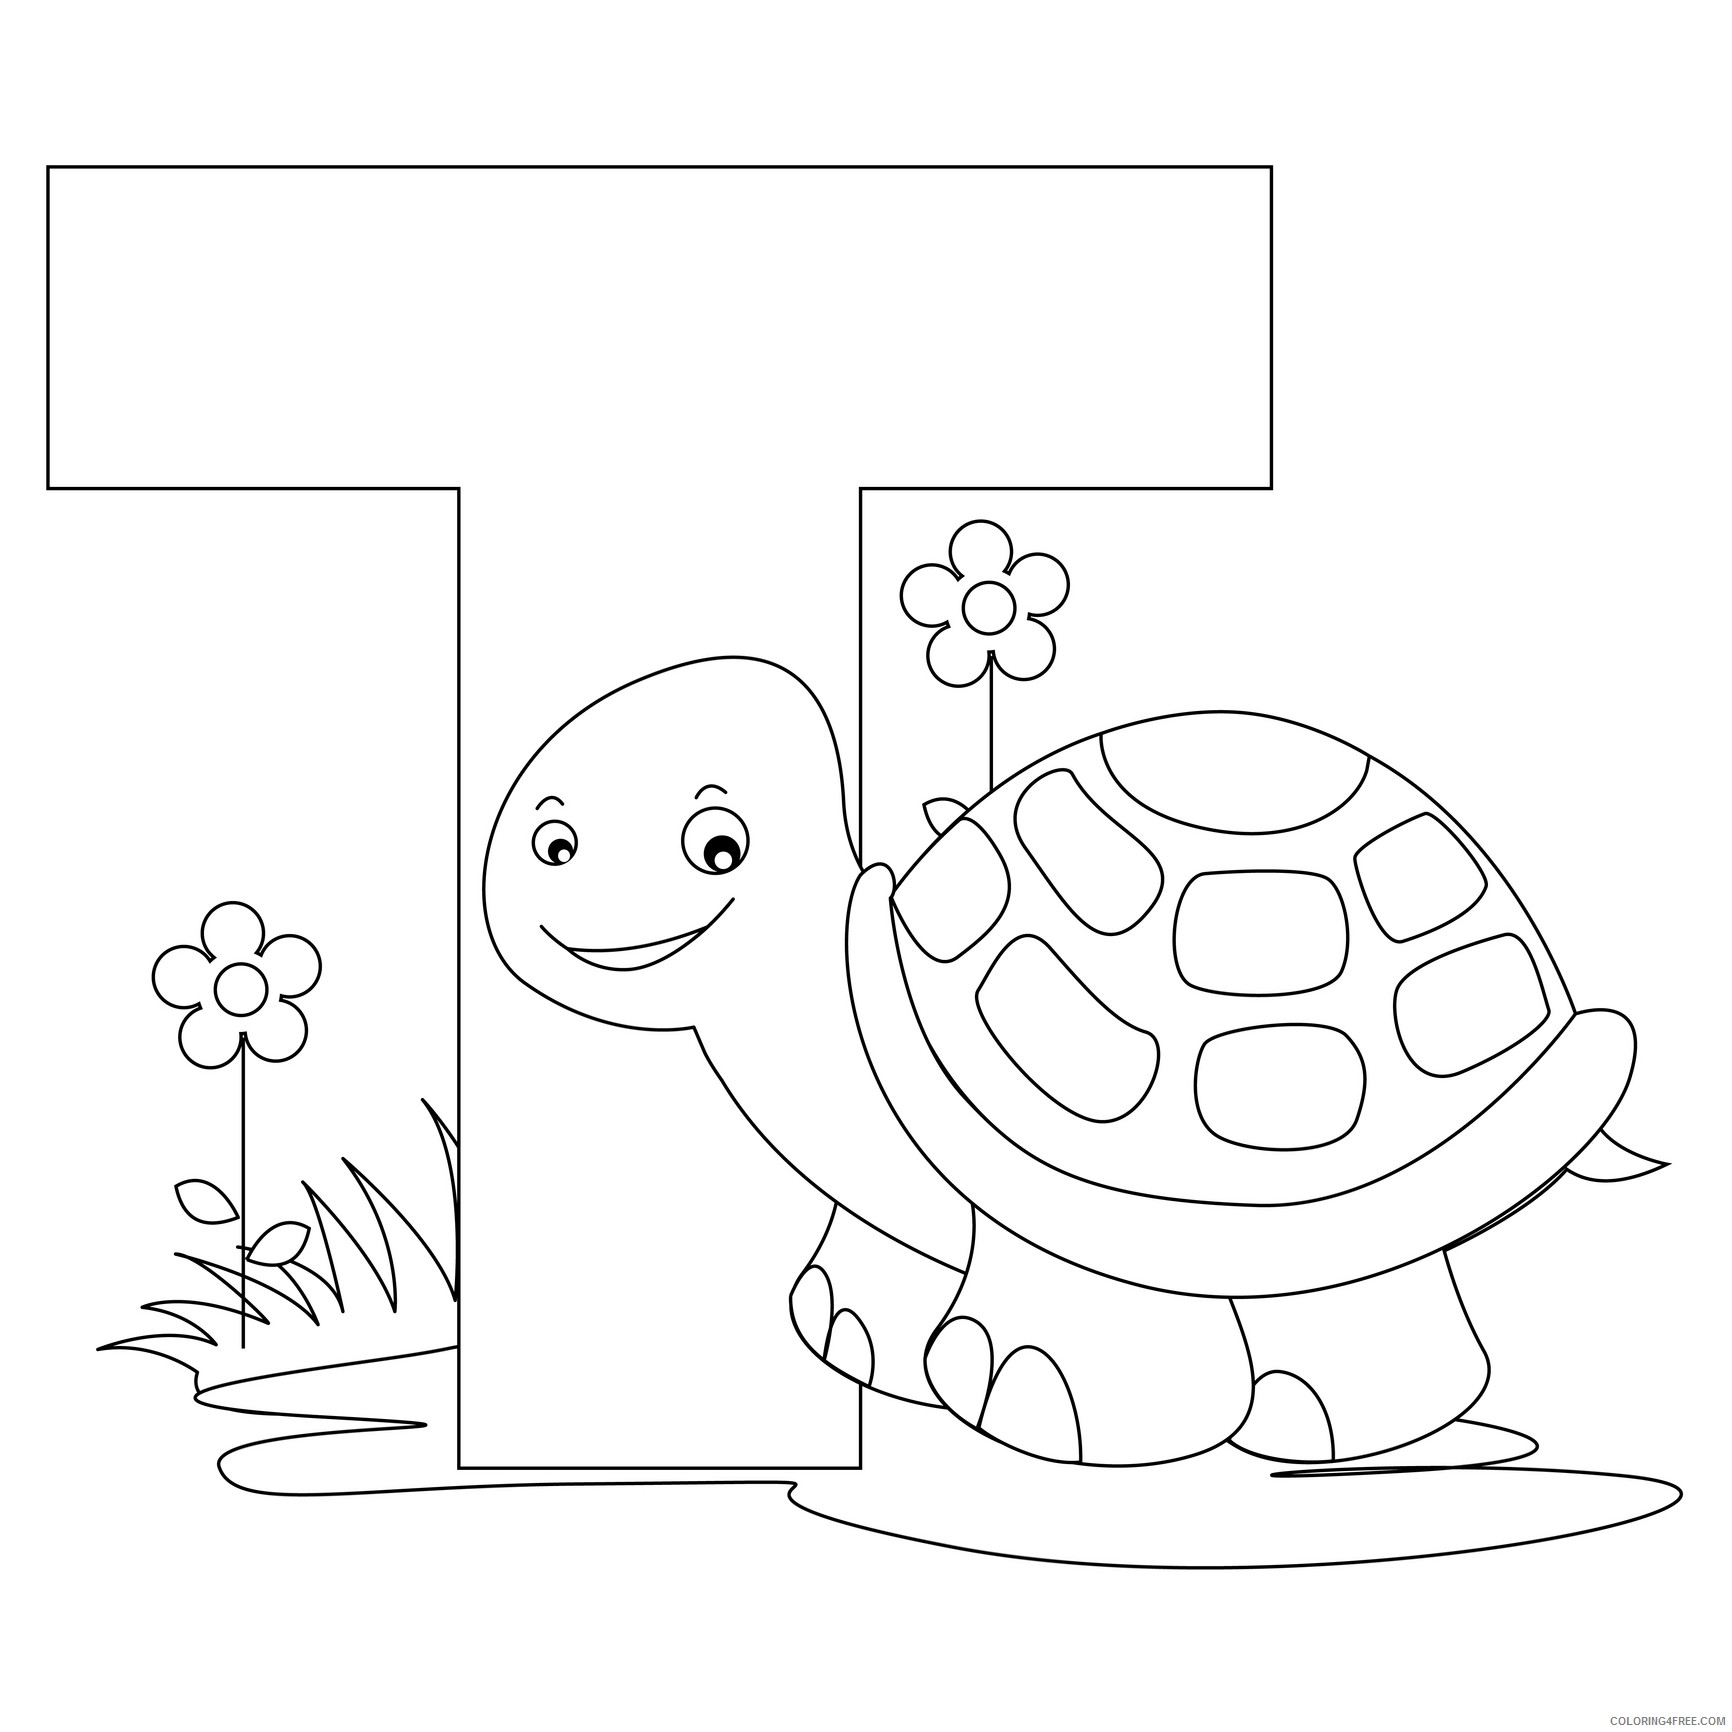 letter coloring pages t for turtle Coloring4free